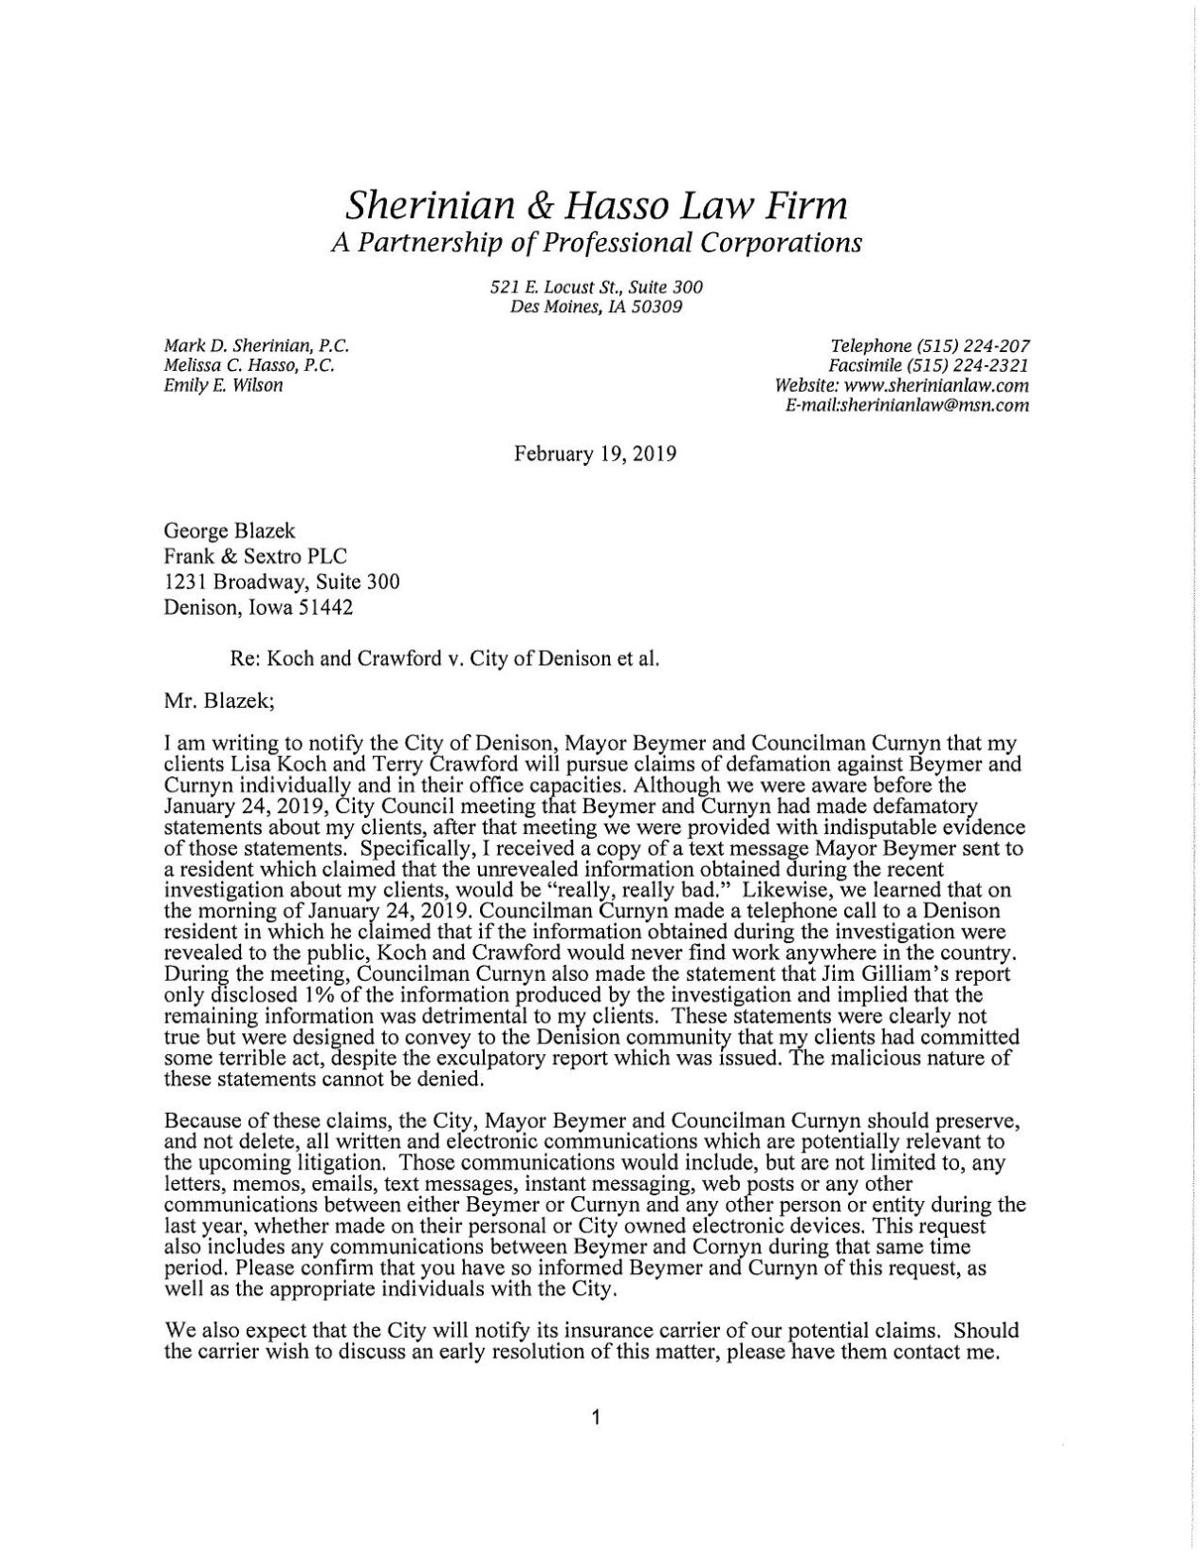 Sherinian Letter Of Intent To Sue